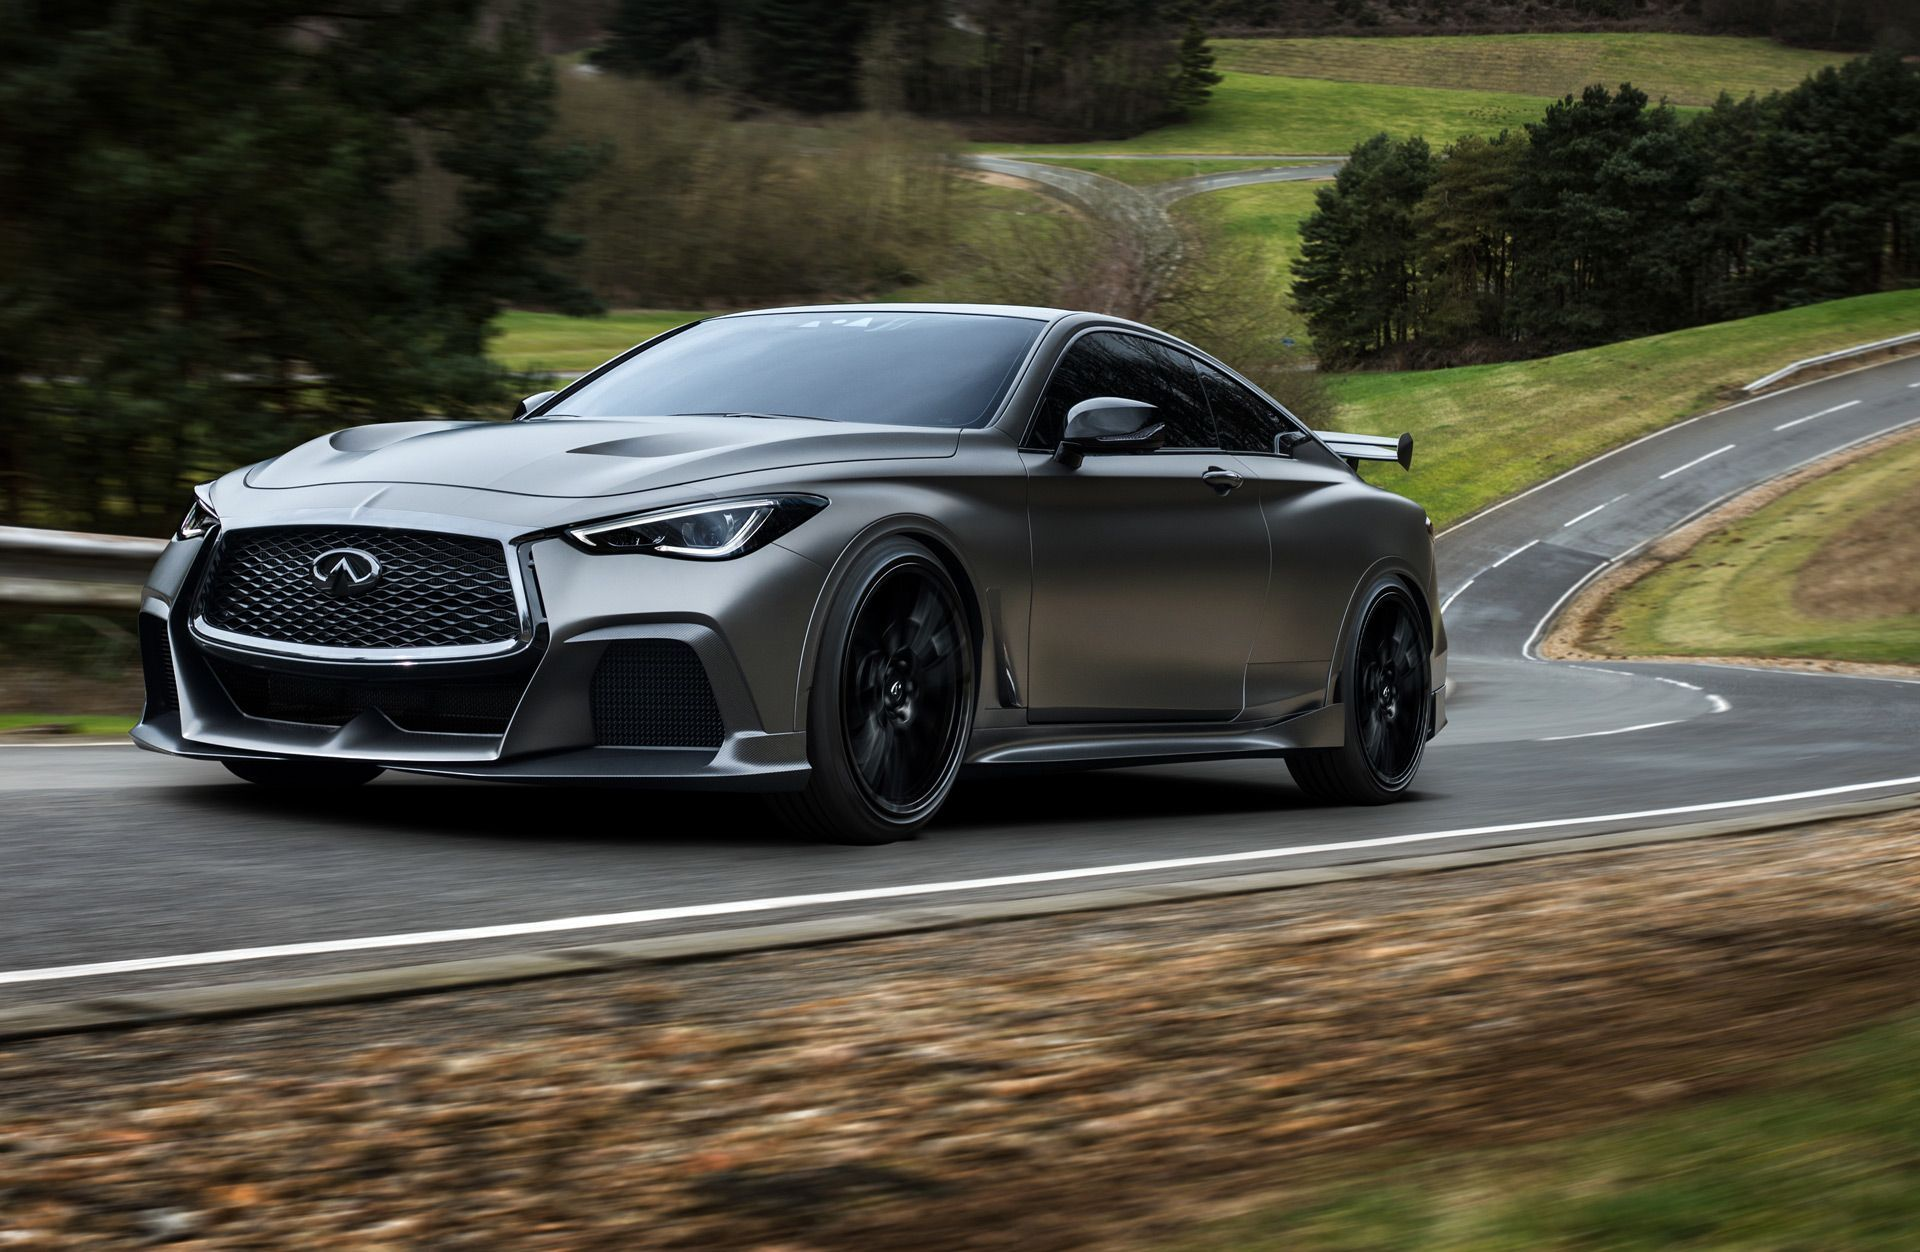 2020 Infiniti Q60 Price And Release Date Infiniti New Infiniti Bmw